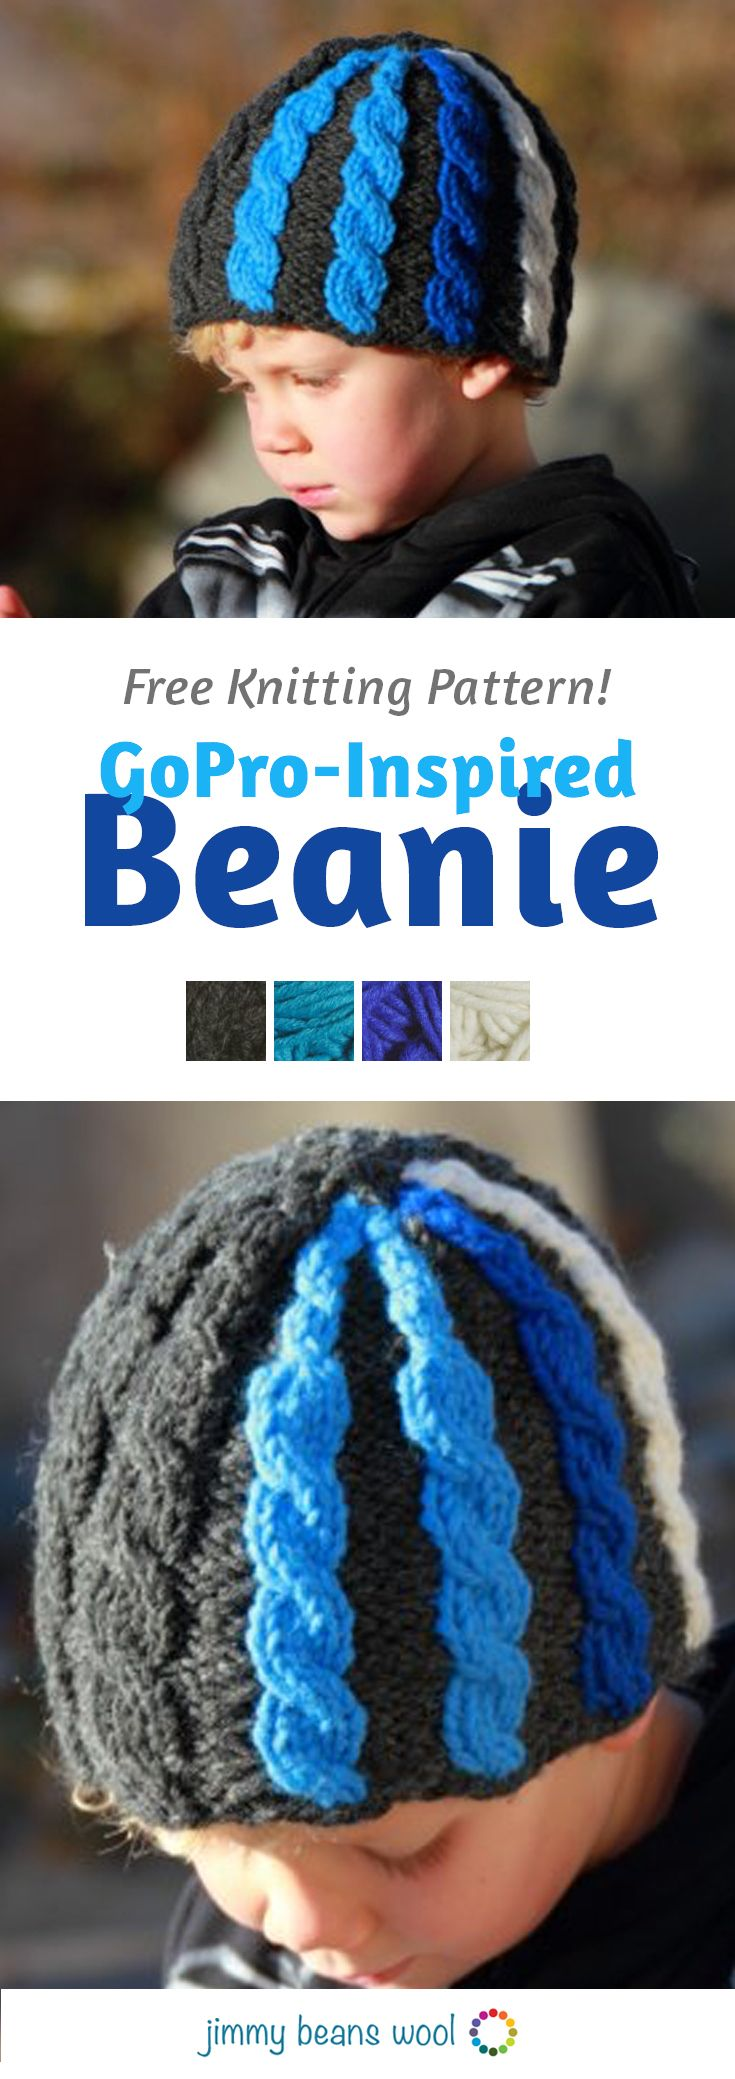 GoPro-Inspired Beanie Free Knitting Pattern | Free Knitting Pattern | Knit Your Own Beanie | Knitting For Beginners | How To Knit For Beginners Step By Step | Beginners Knitting Patterns | How To Knit Step By Step | Jimmy Beans Wool